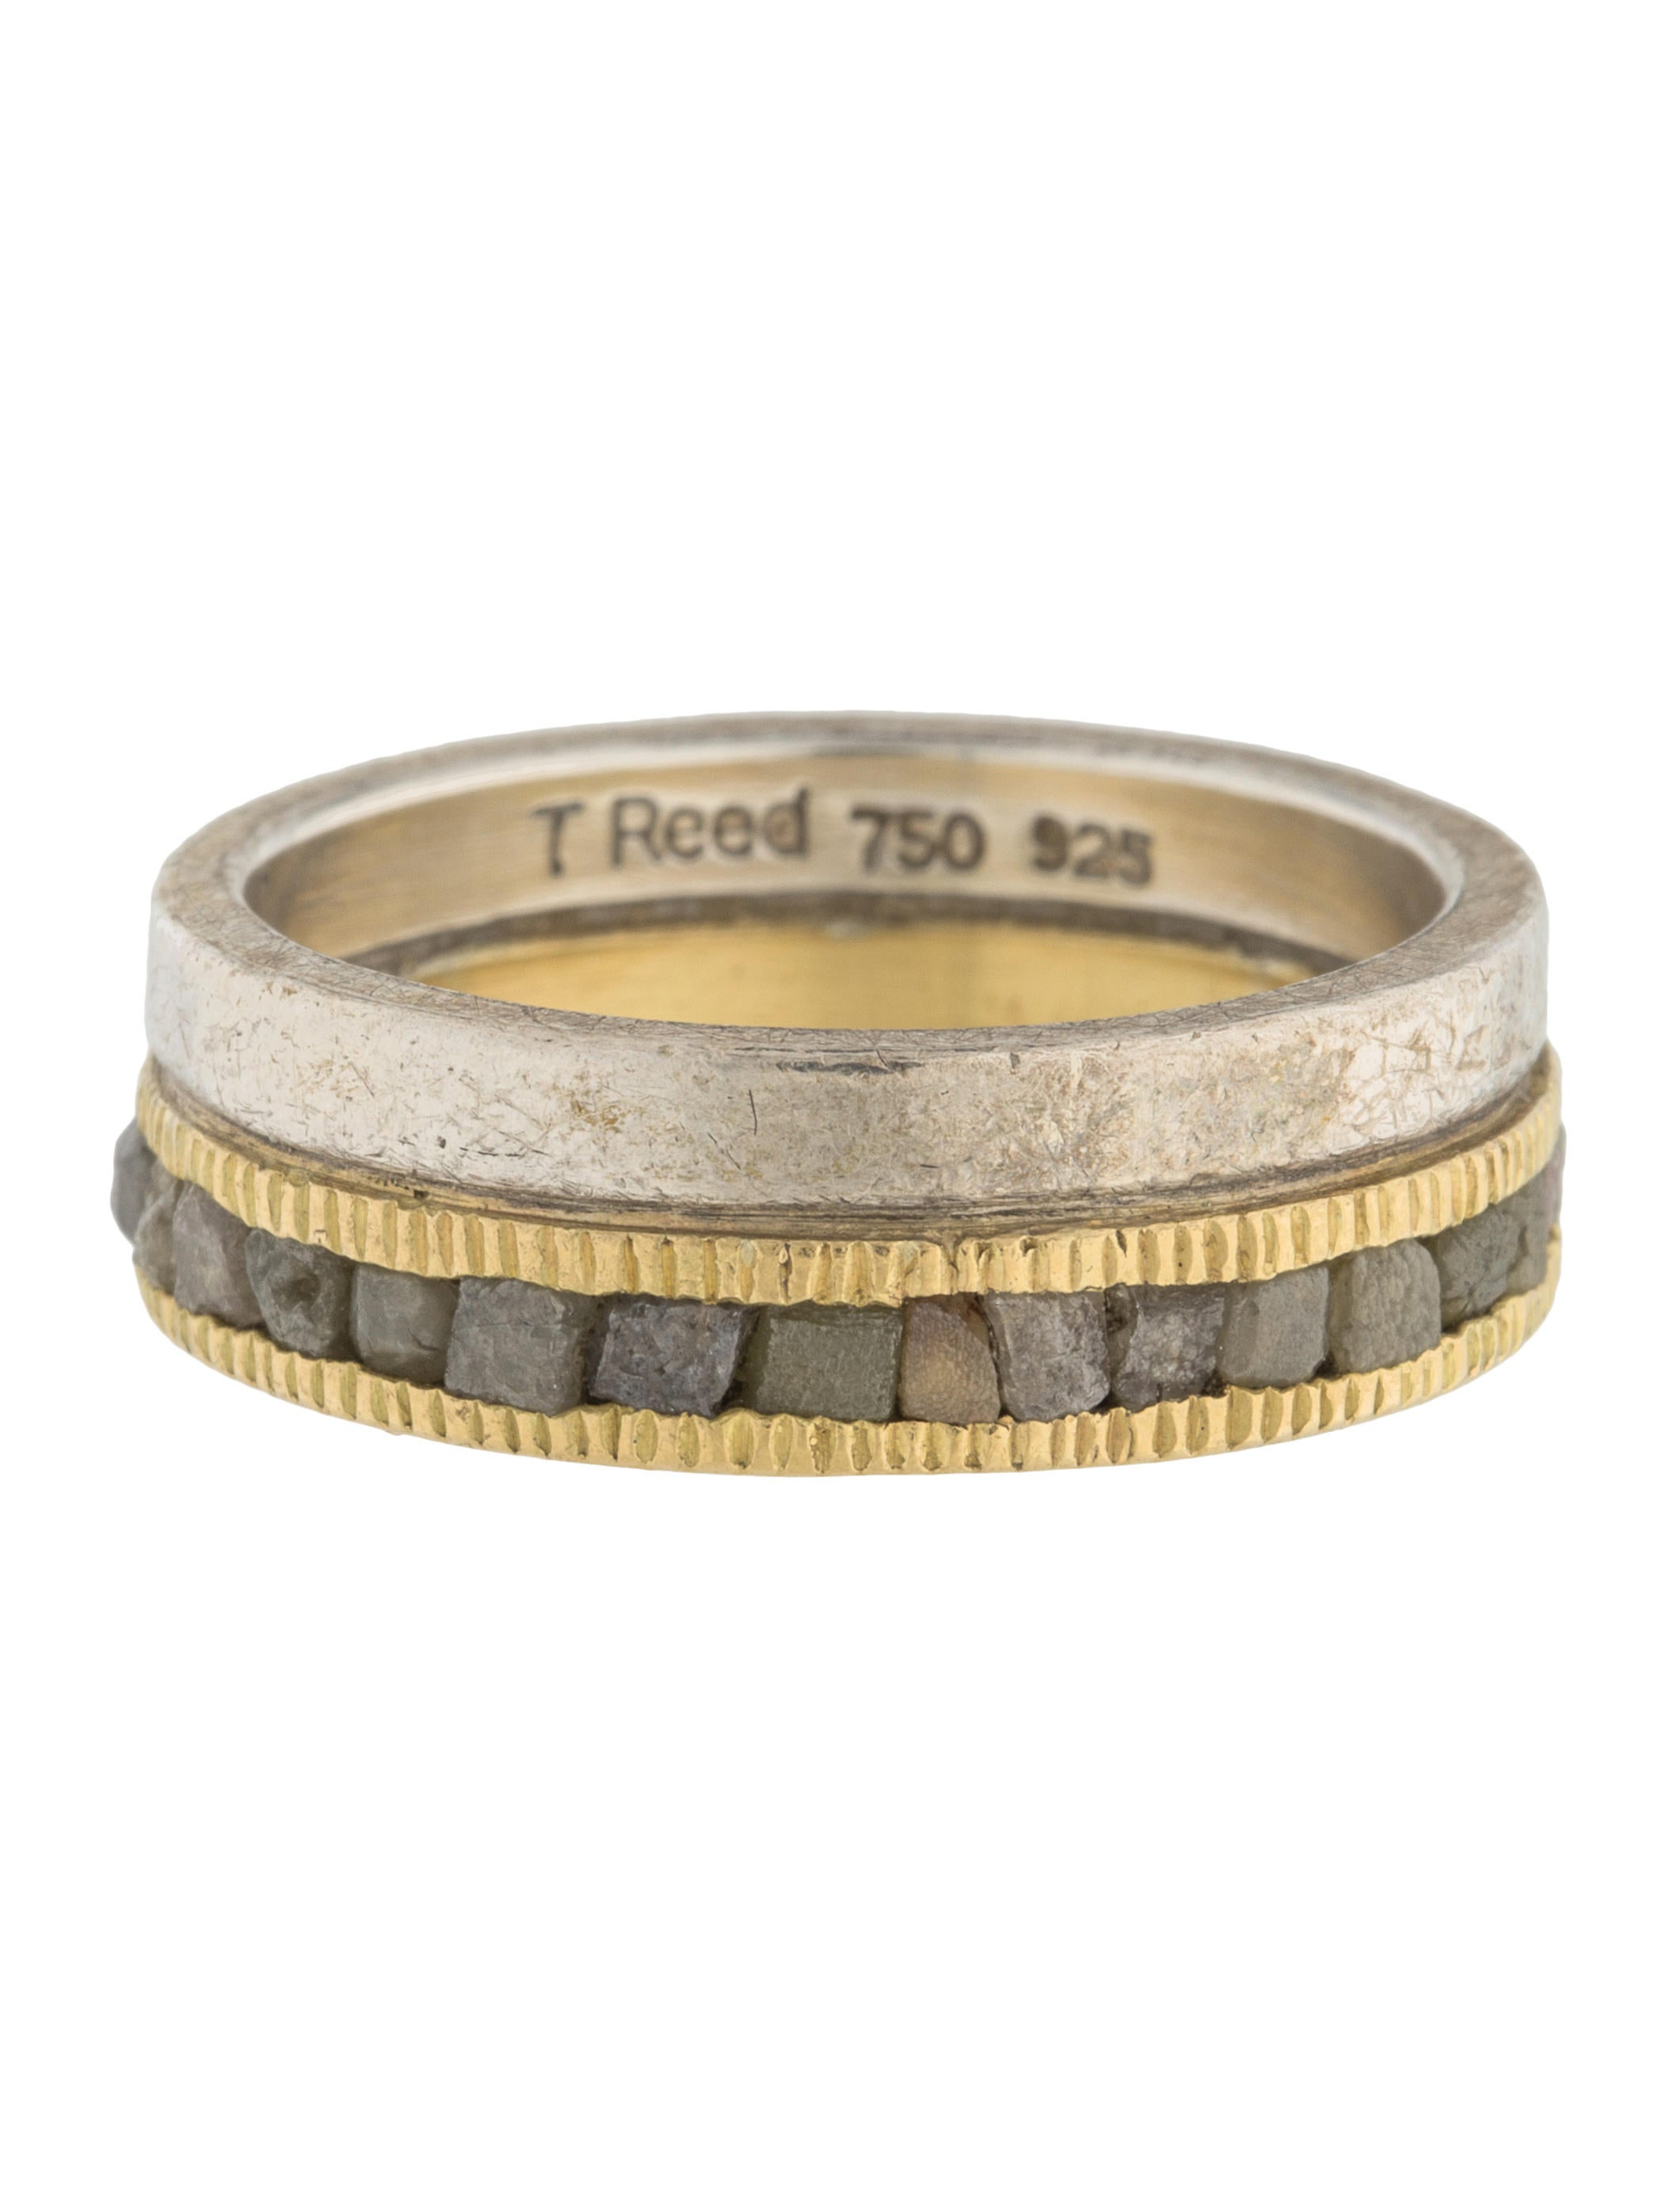 todd reed wedding band rings tee20048 the